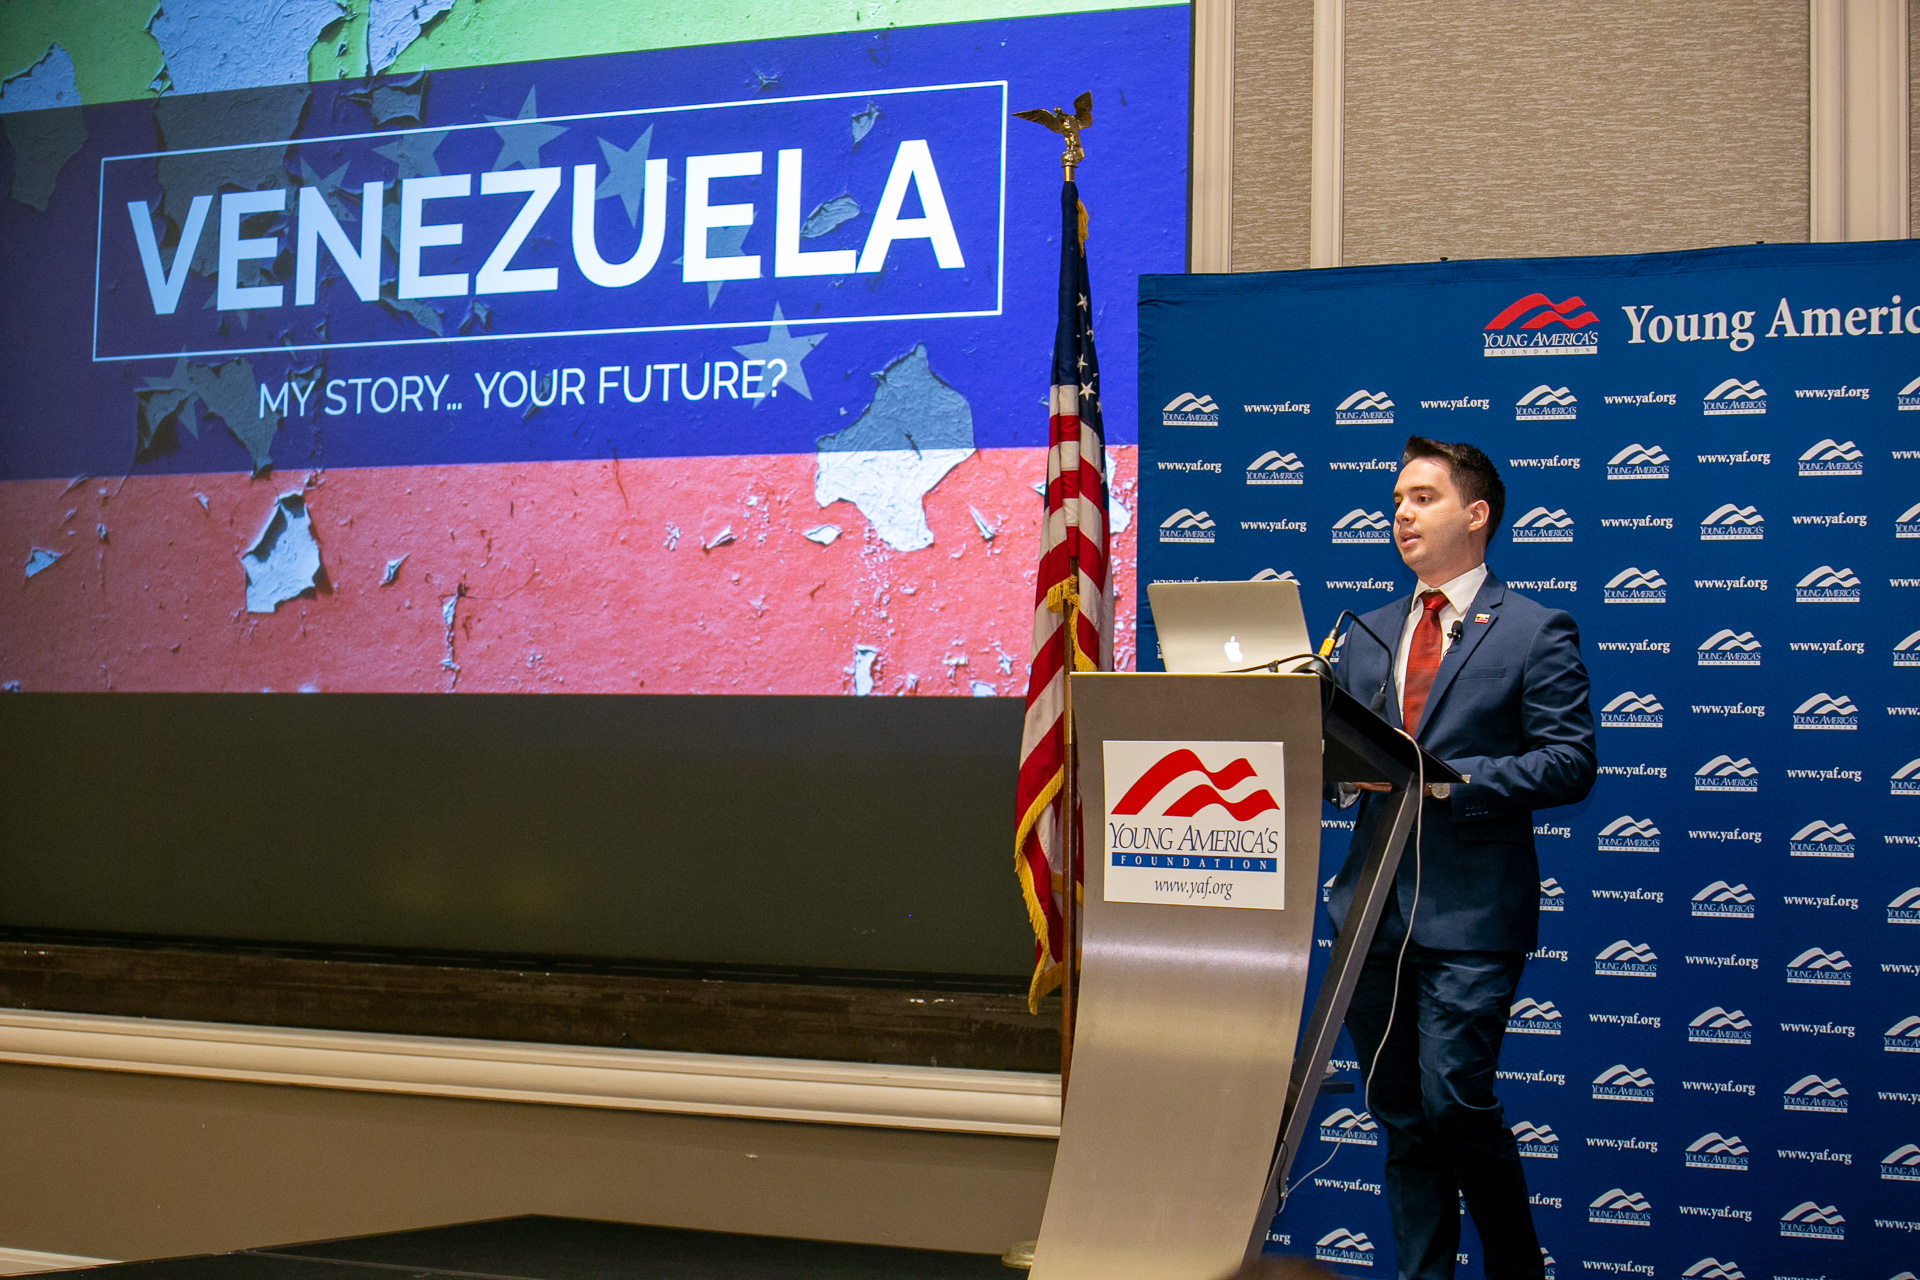 <h1><strong>How Socialism Failed Venezuela featuring Andres Guilarte At the High School Free Enterprise Leaders Conference</strong></h1>